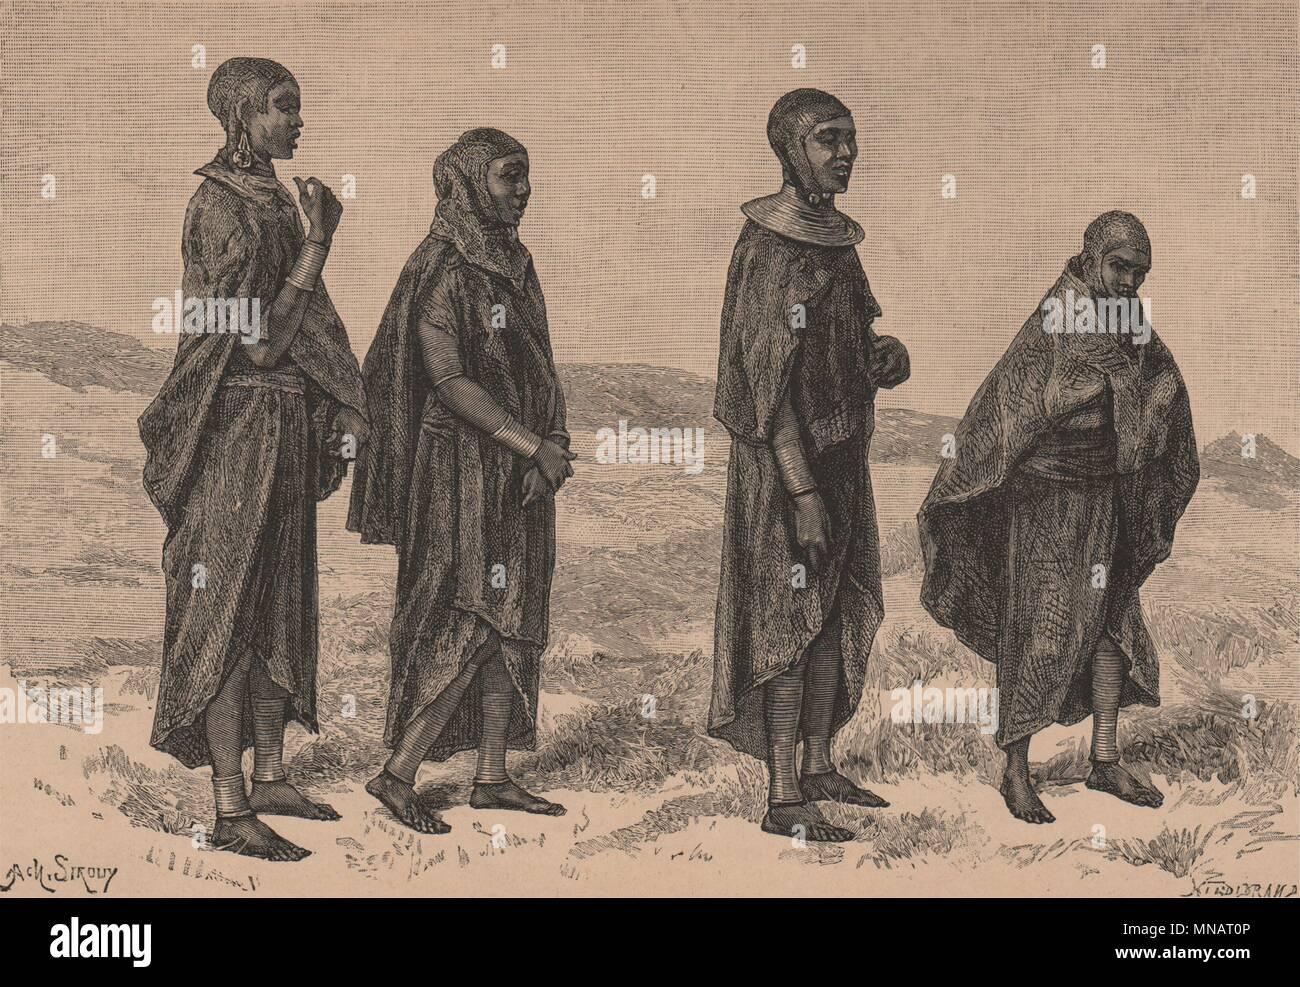 Masai Women of Njeri. Kenya. Maasai Land 1885 old antique print picture - Stock Image